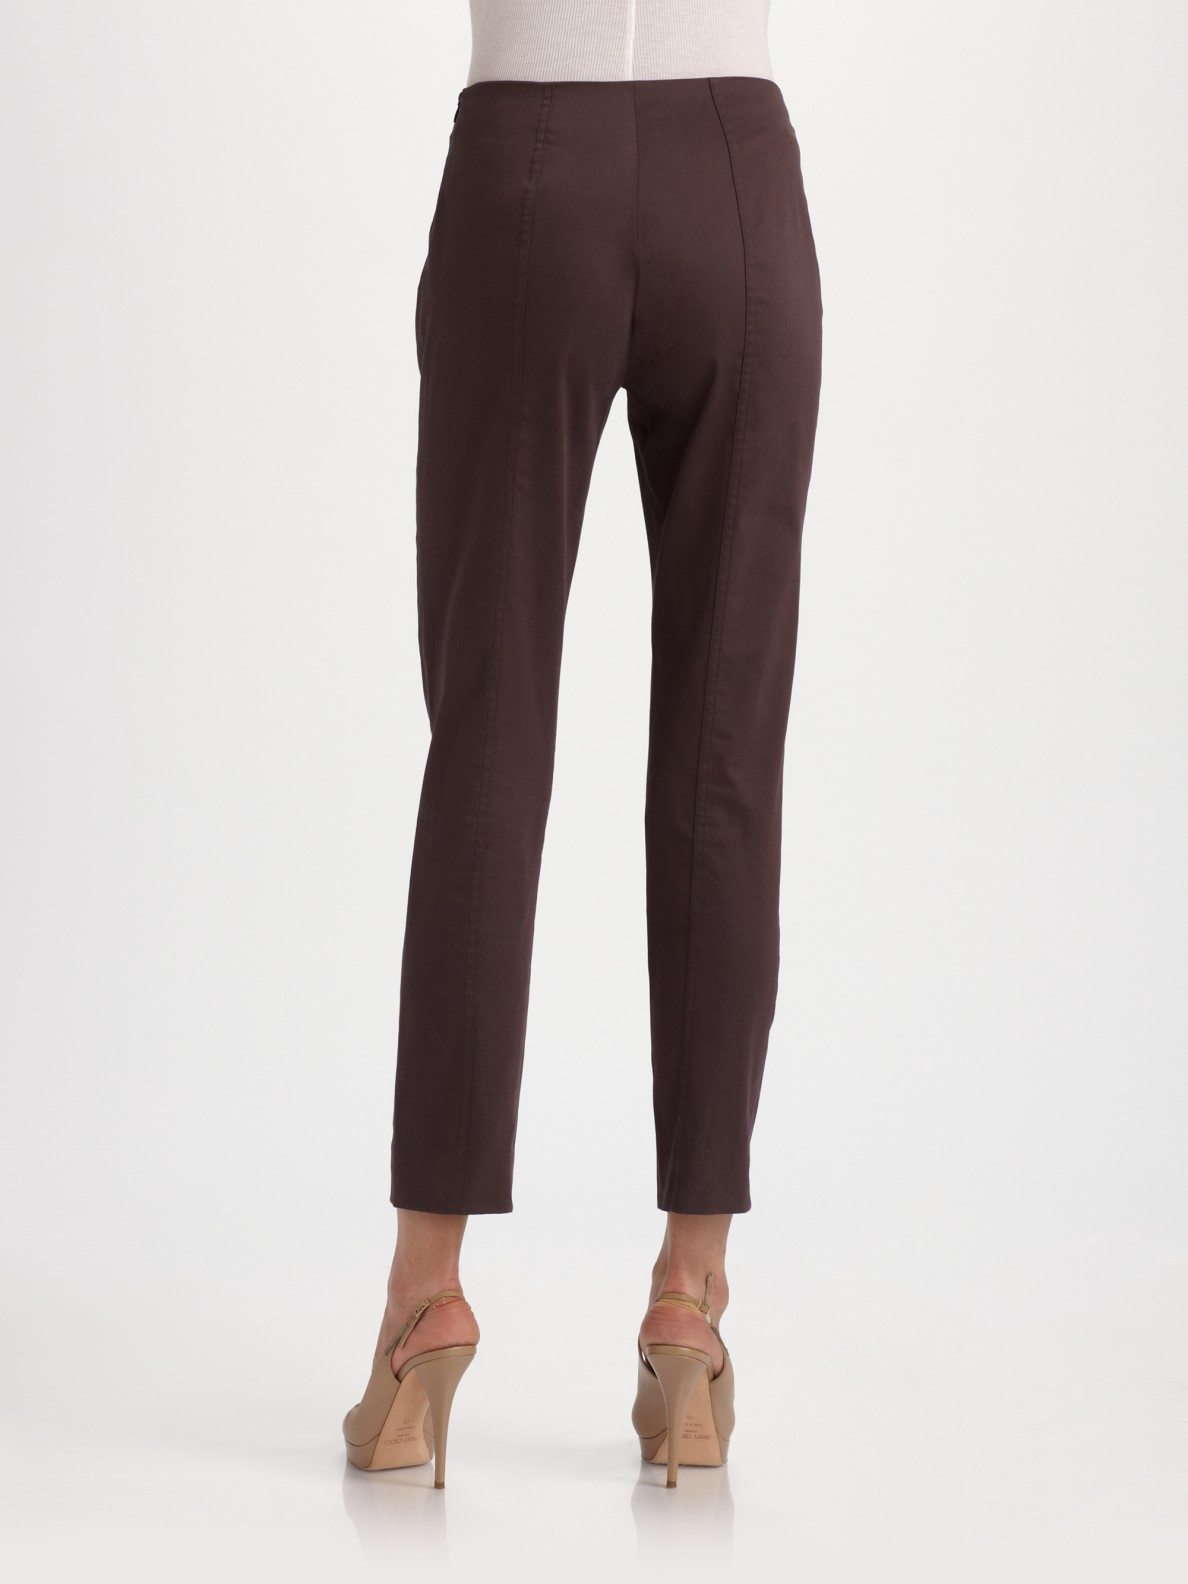 FREE SHIPPING AVAILABLE! Shop coolvloadx4.ga and save on Brown Pants.